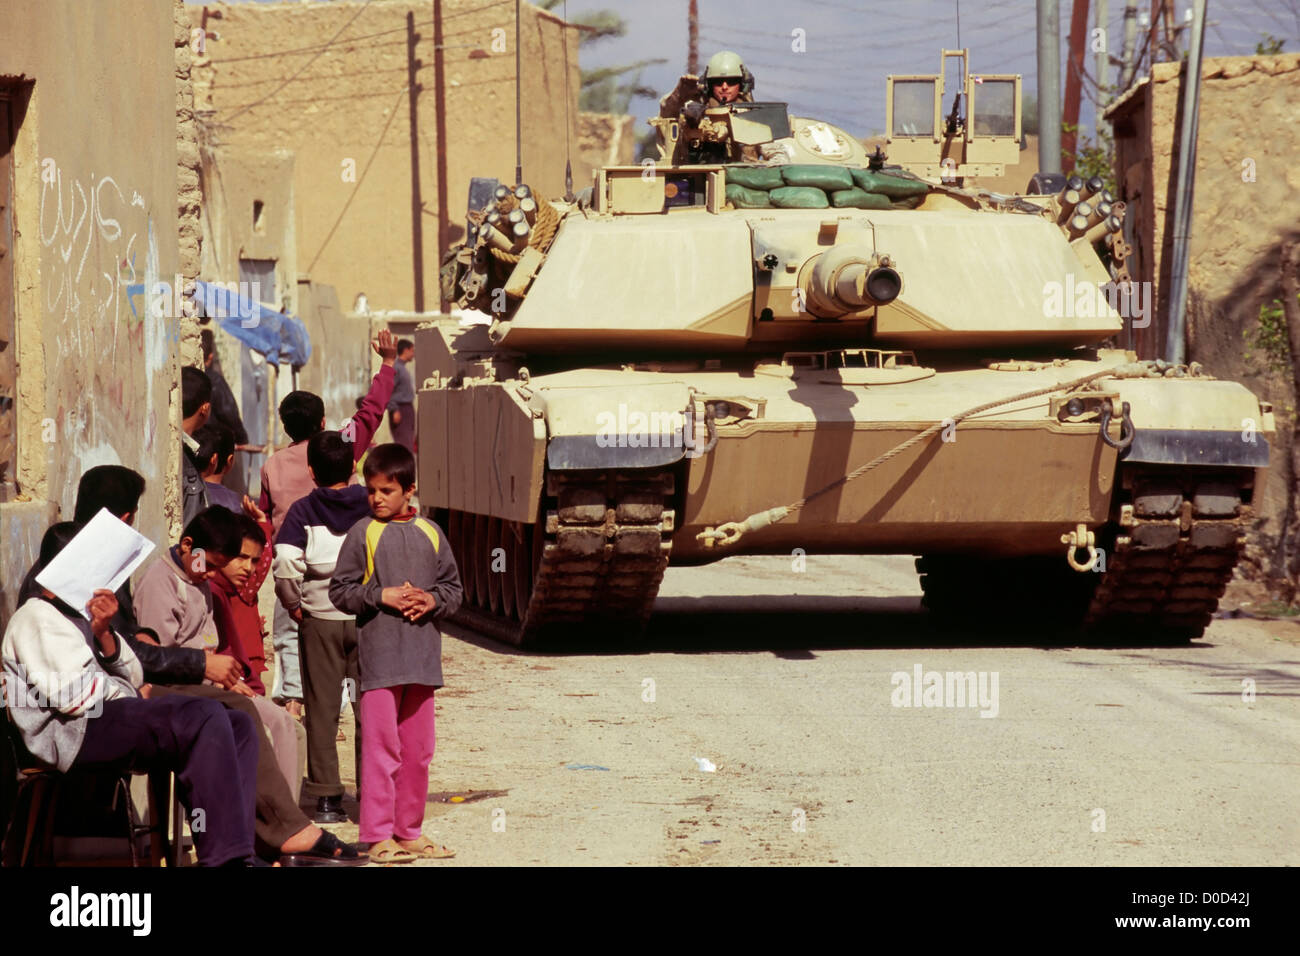 Children Gaze at a Passing Marine Corps Tank During a Combat Operation in Haqlaniyah, Iraq - Stock Image